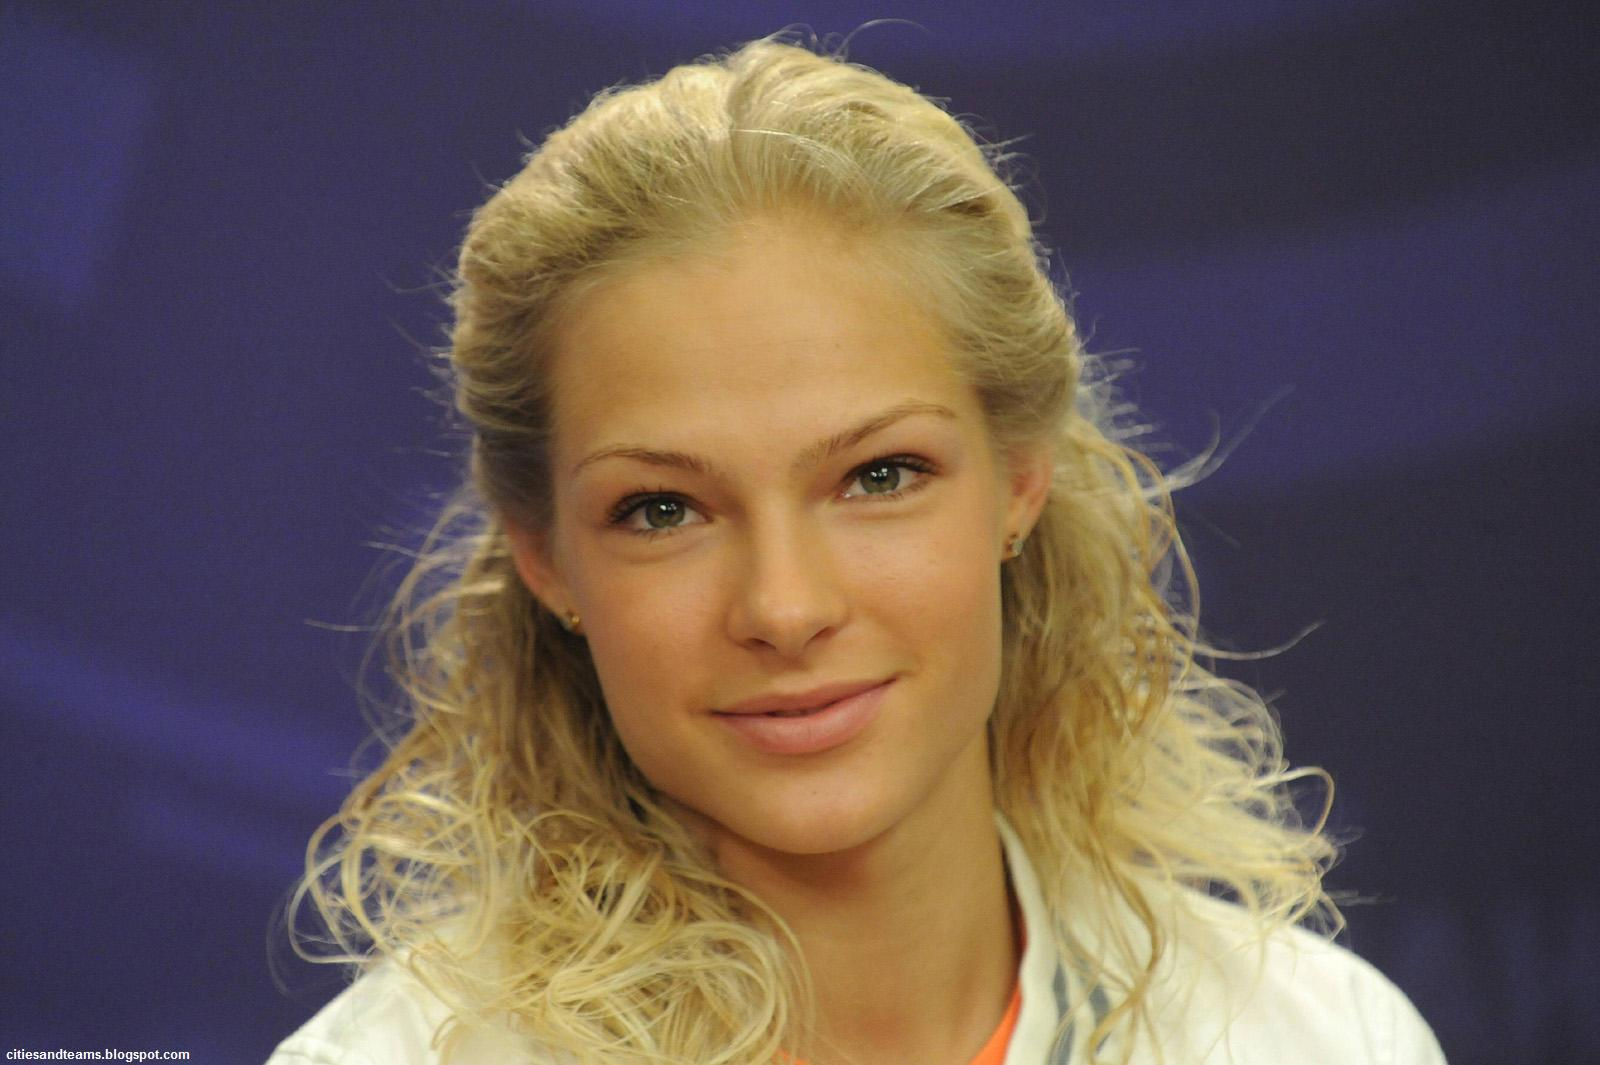 http://2.bp.blogspot.com/-zBIZanfjmMg/UGh9PSXyphI/AAAAAAAAH5g/P8iMgw2n61k/s1600/Darya_Klishina_Cute_Russian_Long_Jumper_And_Beautiful_Nice_Model_Russia_Hd_Desktop_Wallpaper_citiesandteams.blogspot.com.jpg